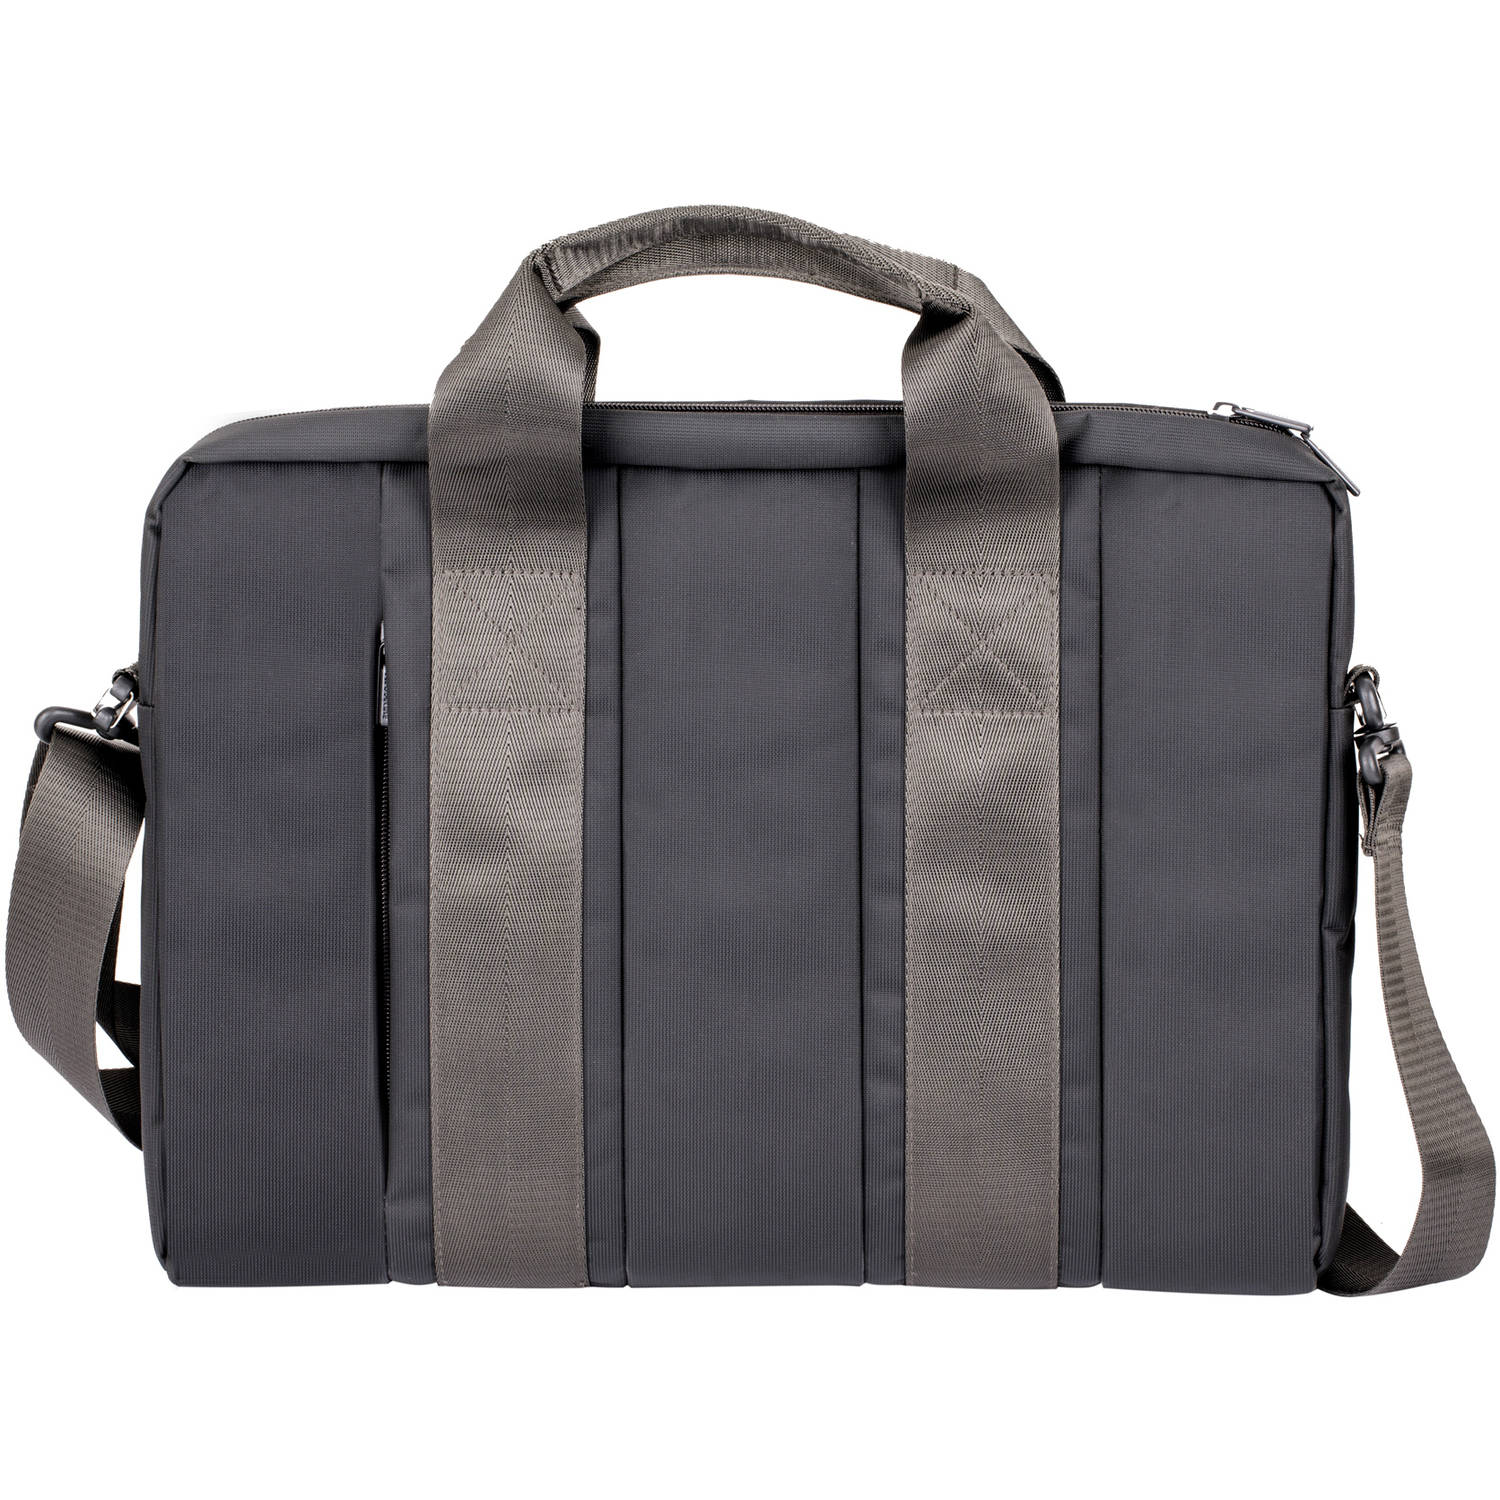 "RIVACASE 8830 Hyde 15.6"" Laptop Bag"